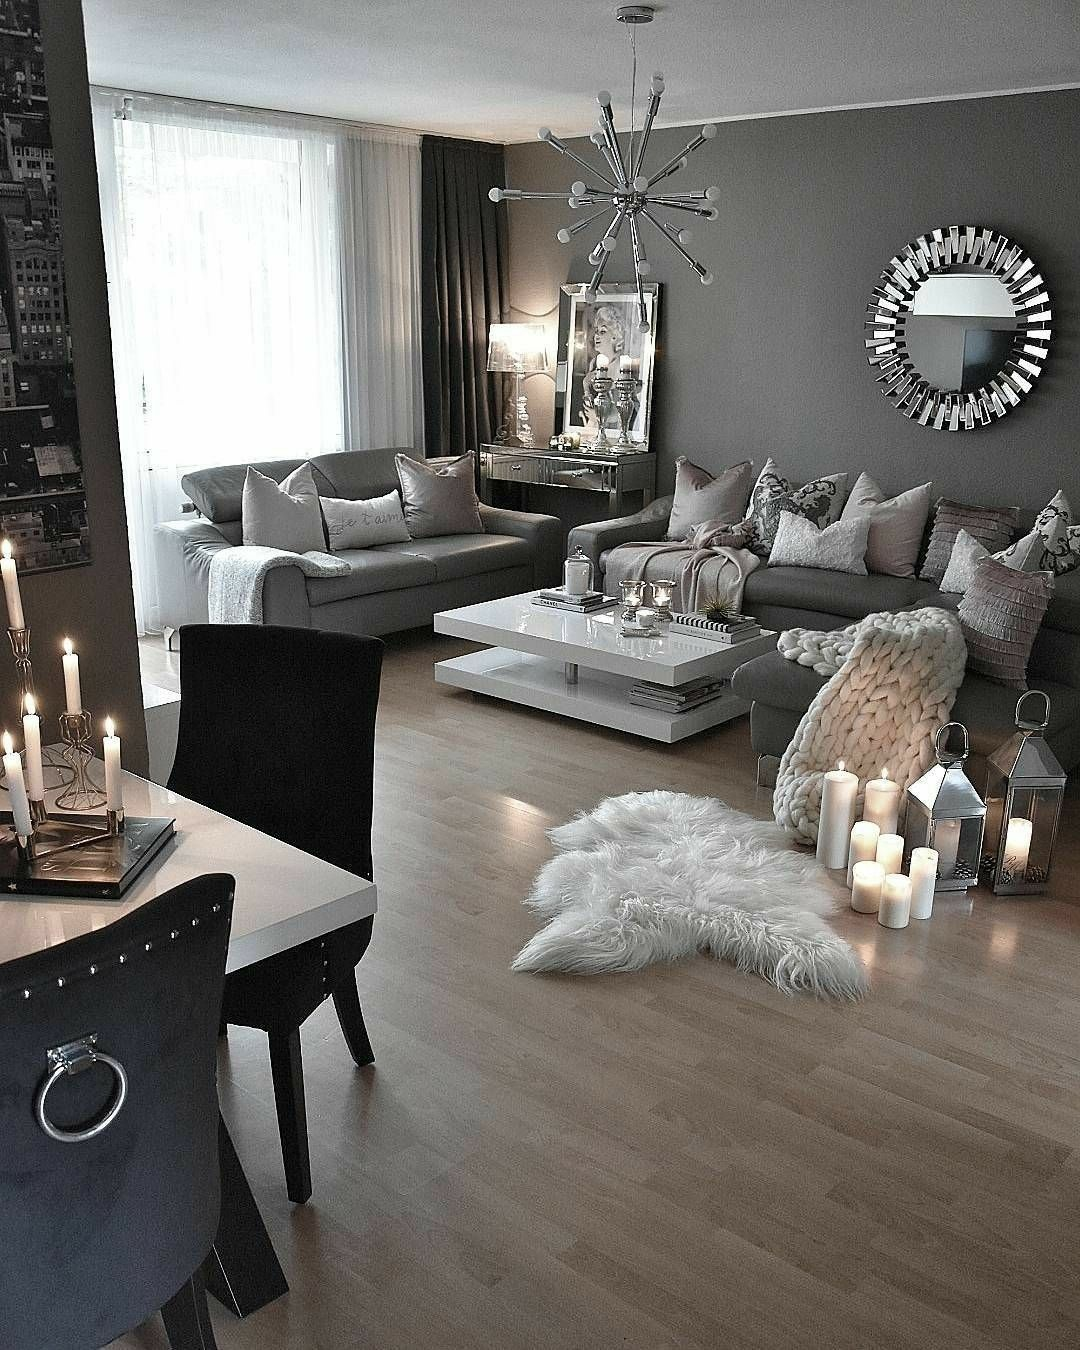 Apartment nyc home sweet home pinterest decoraci n - Sweet home muebles ...